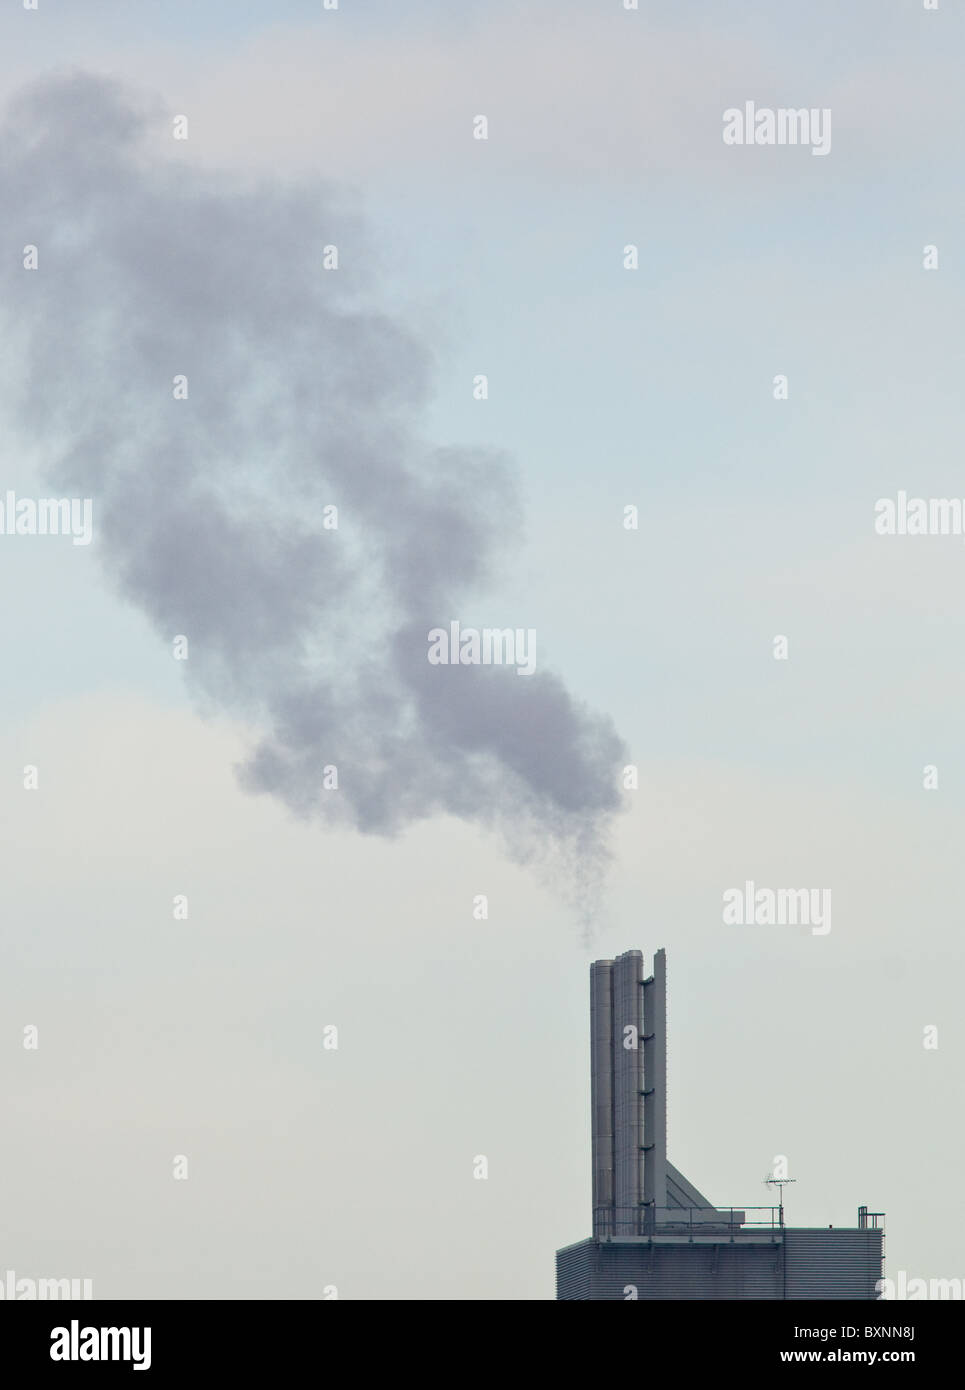 Steam and hot exhaust gases being emitted through steel chimneys - Stock Image